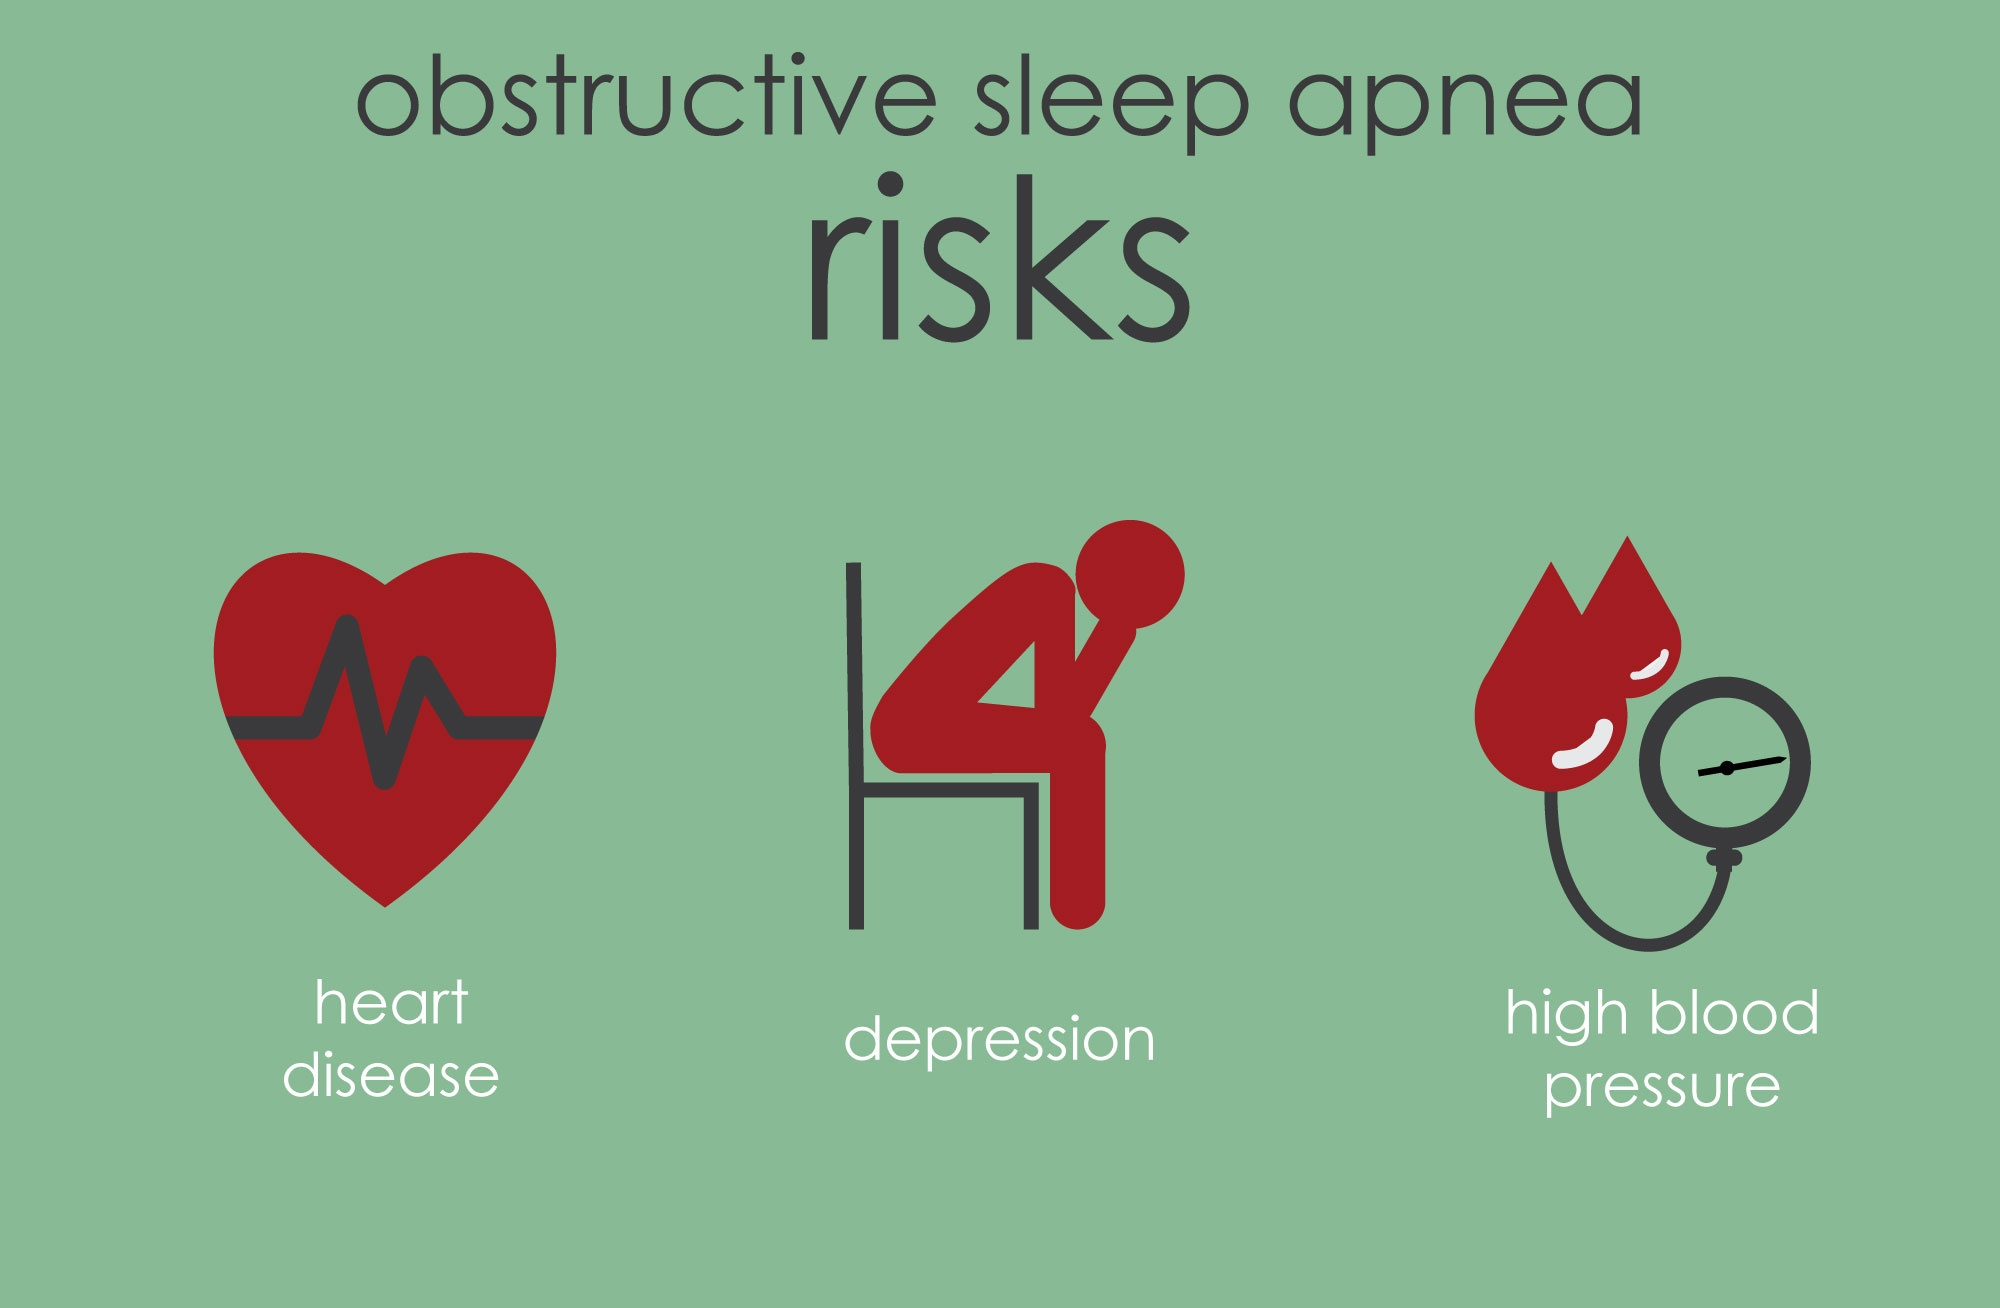 In addition to hgih blood pressure, sleep apnea is associated with heart disease and depression